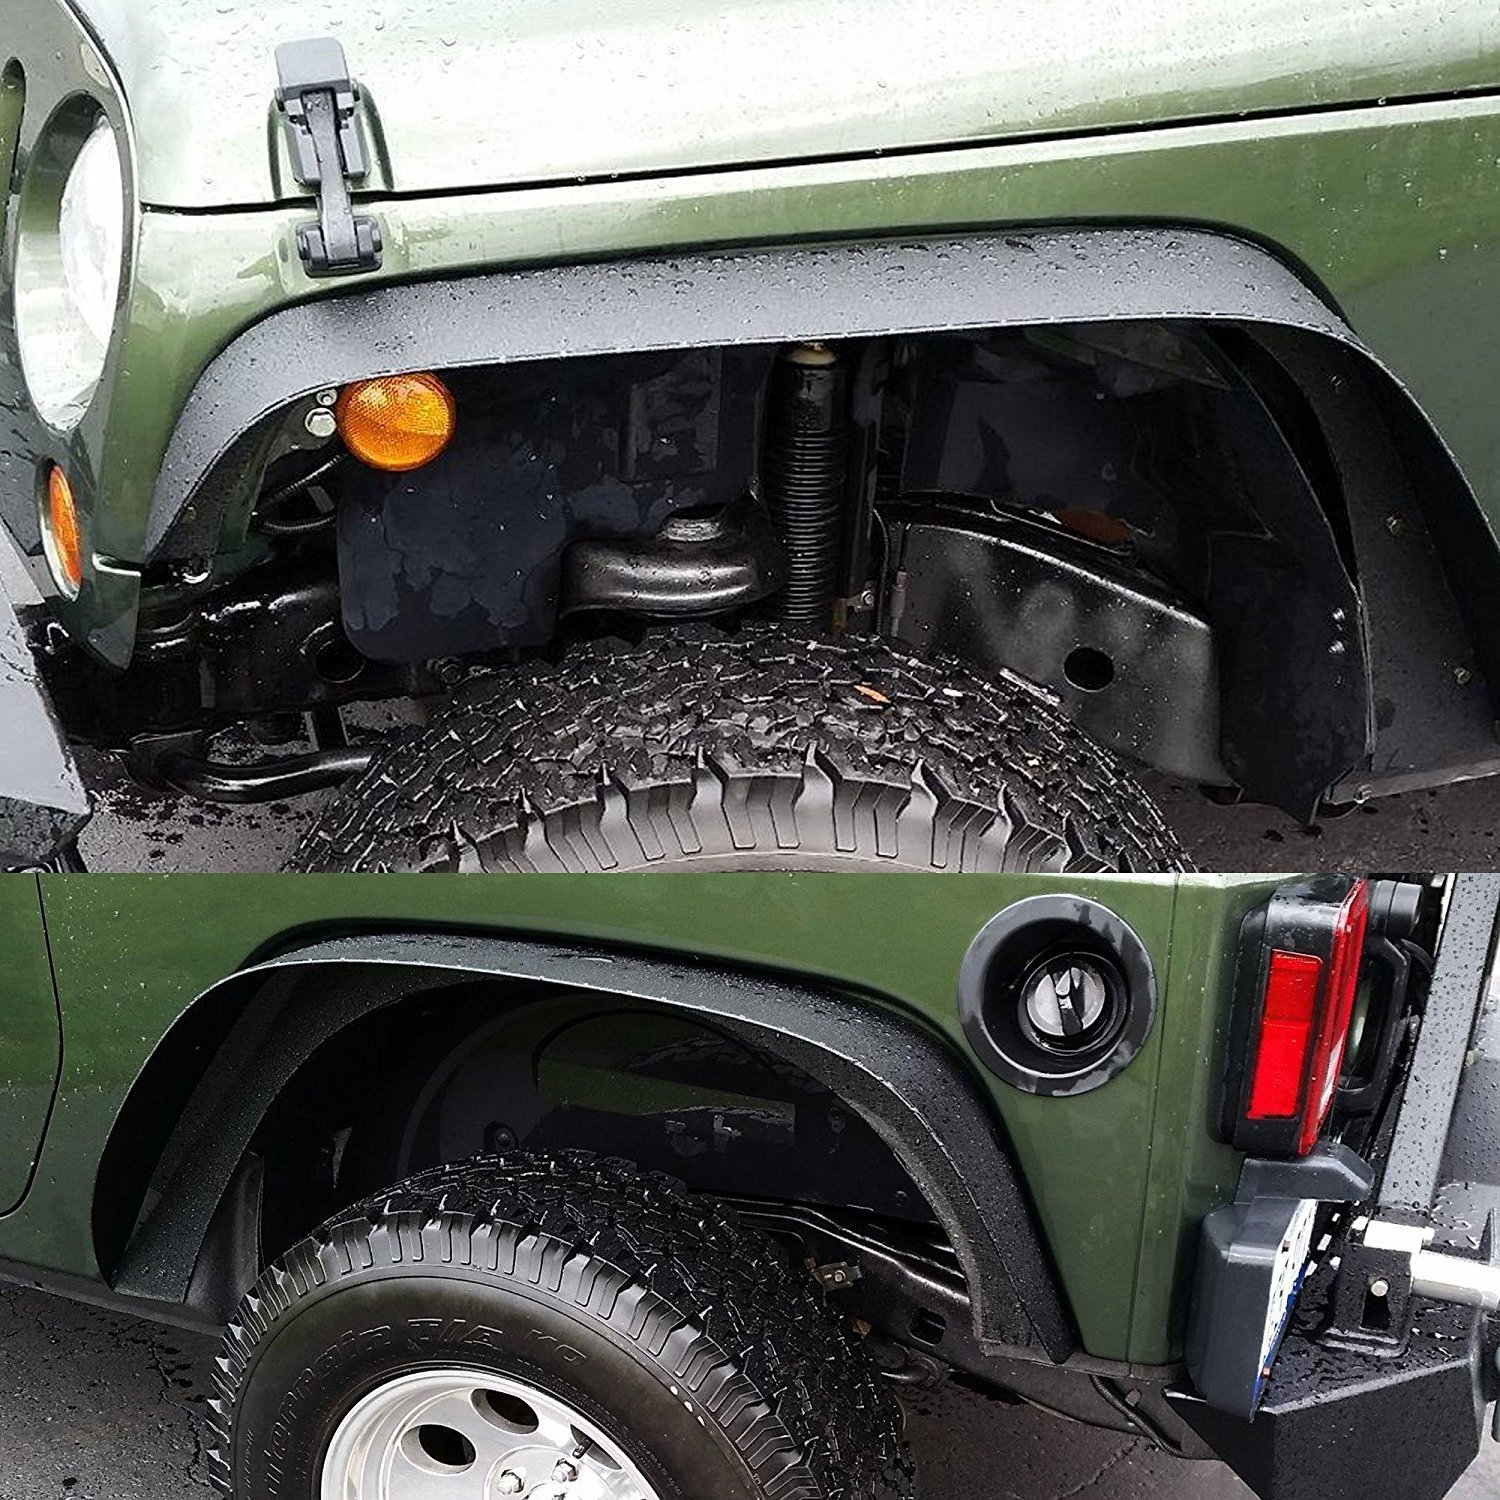 07-17 JEEP WRANGLER JK UNLIMITED FLAT TEXTURED STYLE